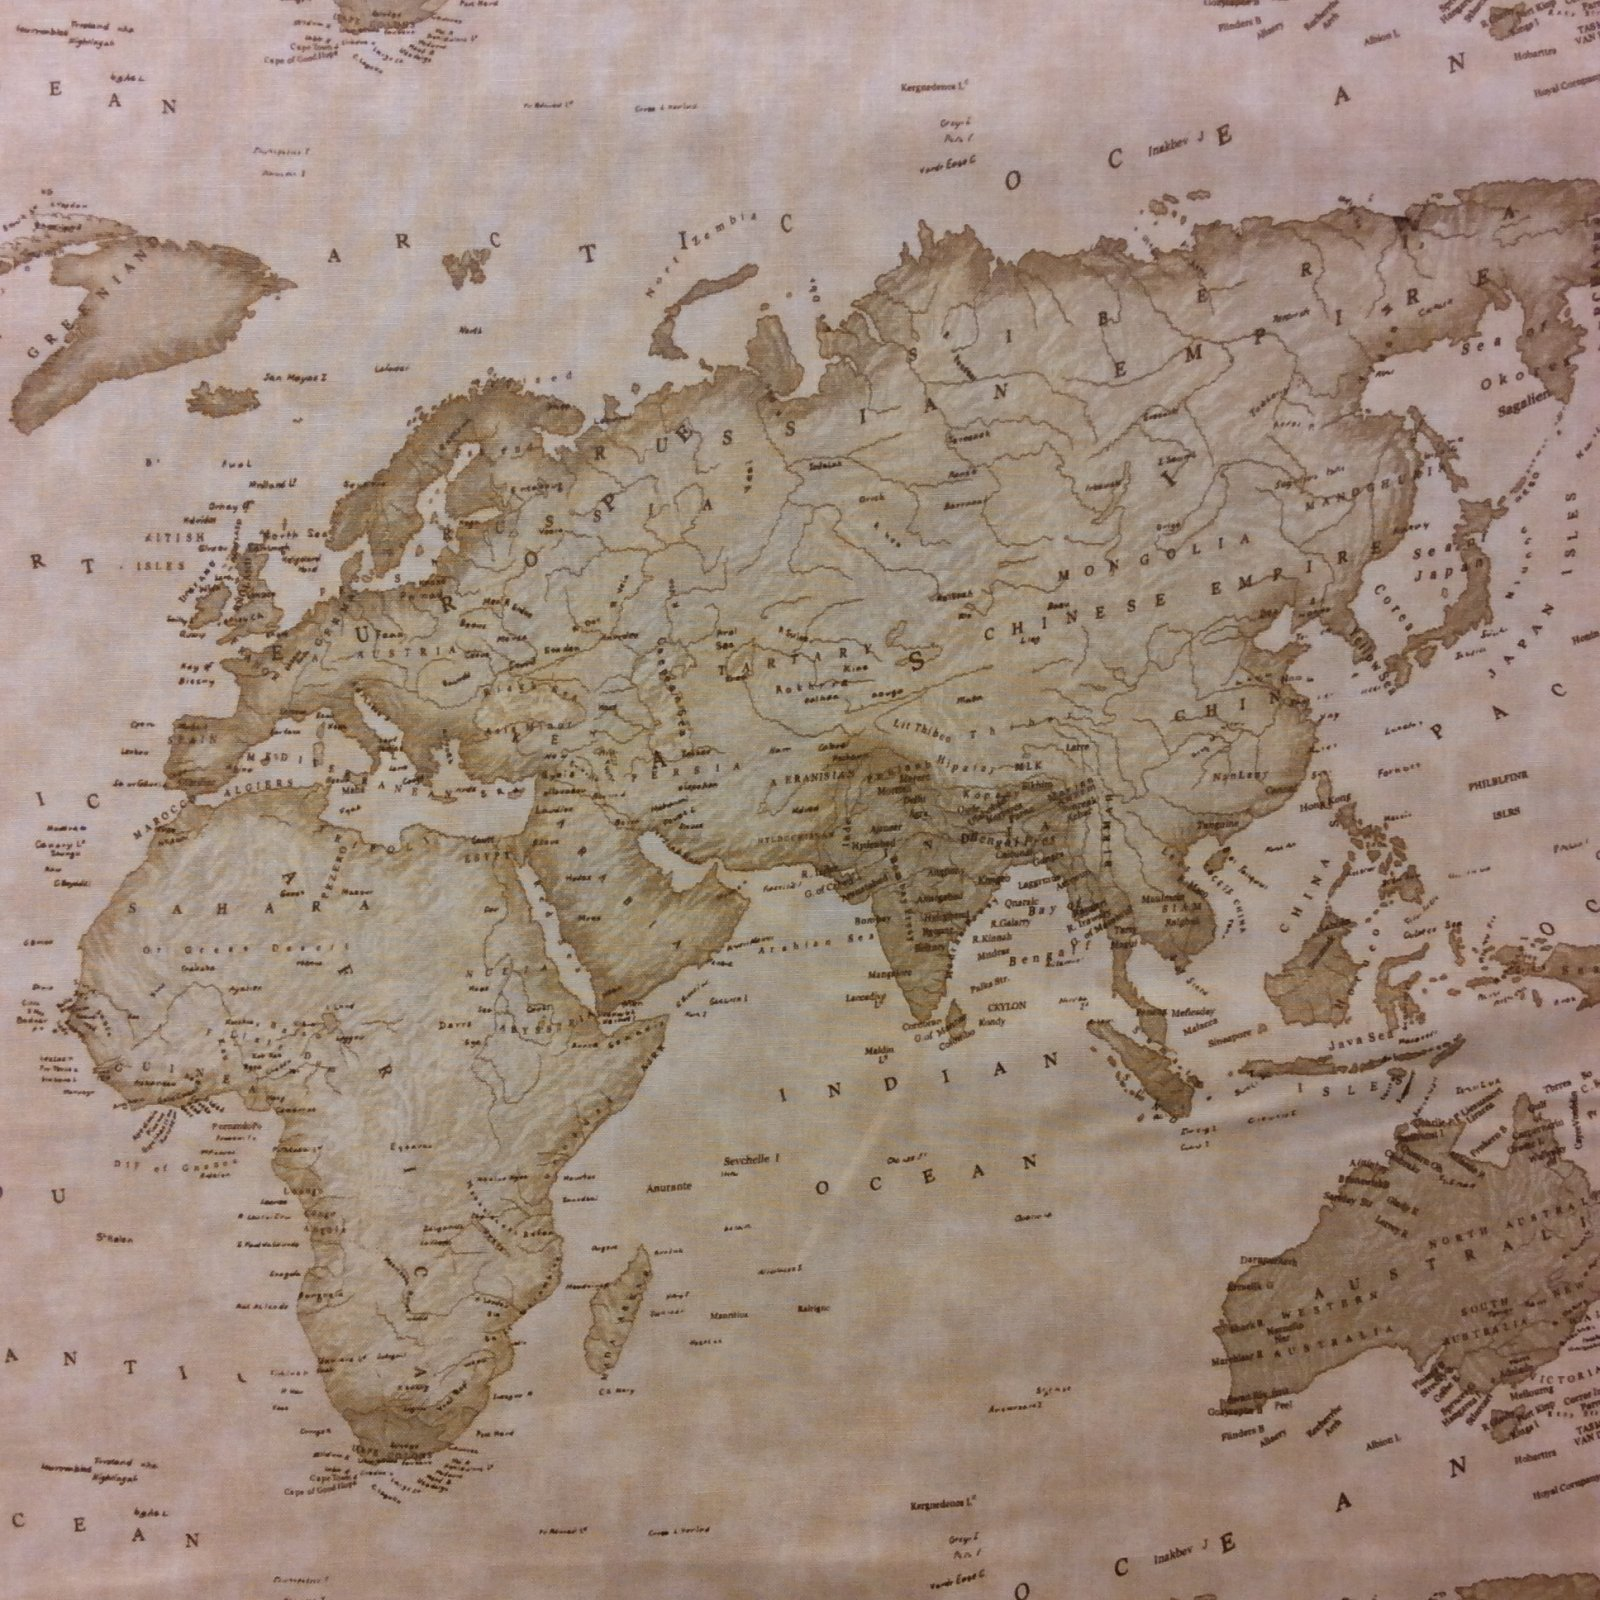 Worksheet. MO09 Moda Sepia Map of the World Atlas Continent Quilt Cotton